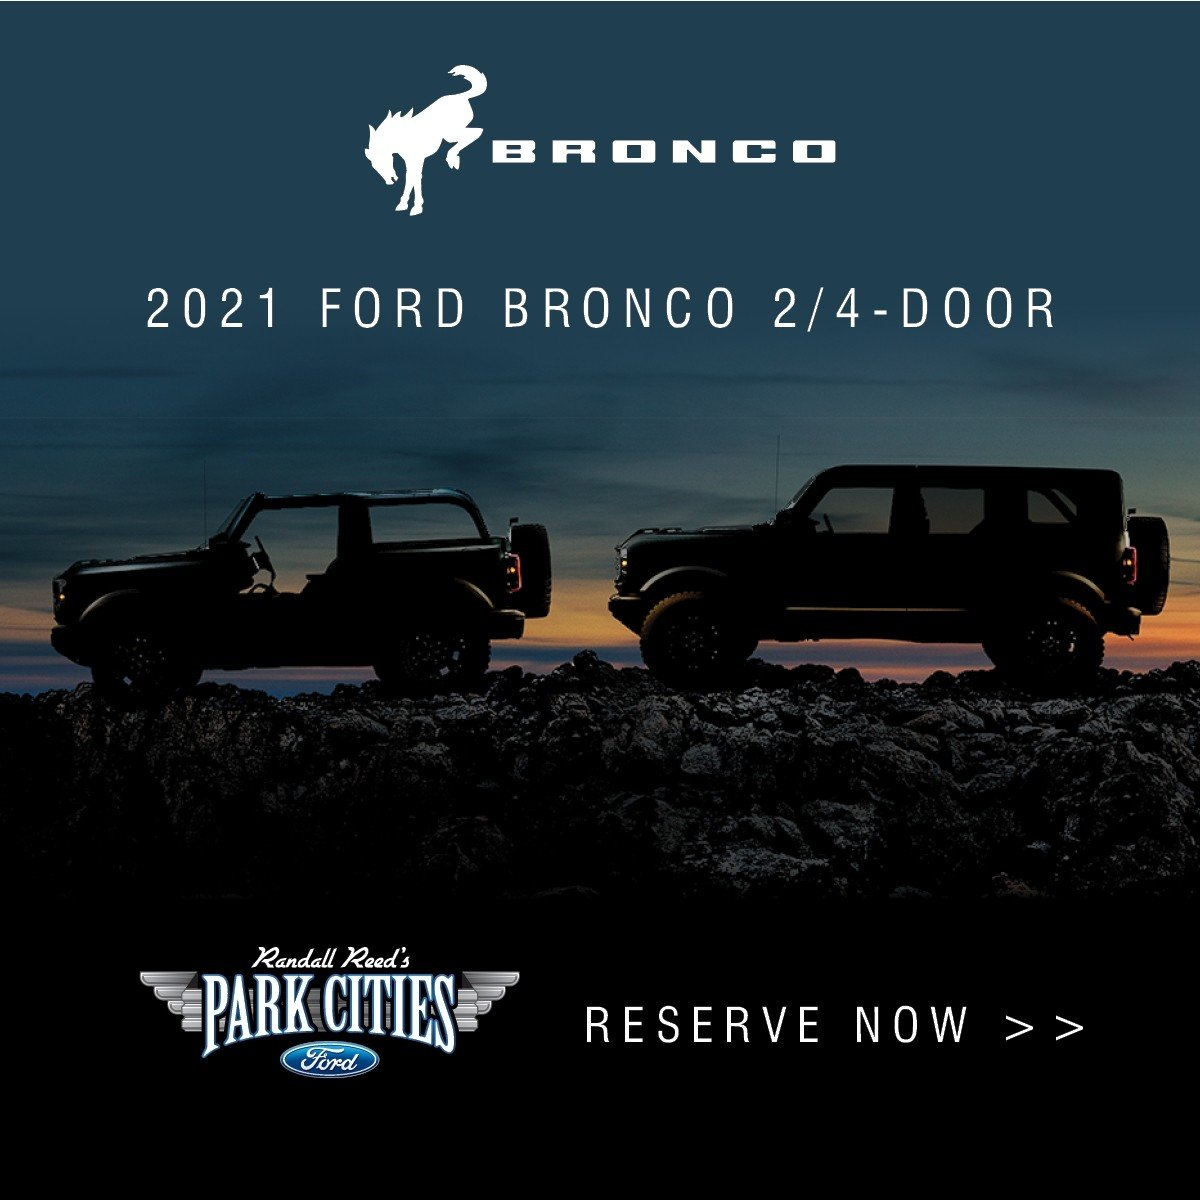 New 2021 Ford Bronco 2-Door & 4-Door - Reserve Now at Park Cities Ford of Dallas - Your Dallas Ford Dealer